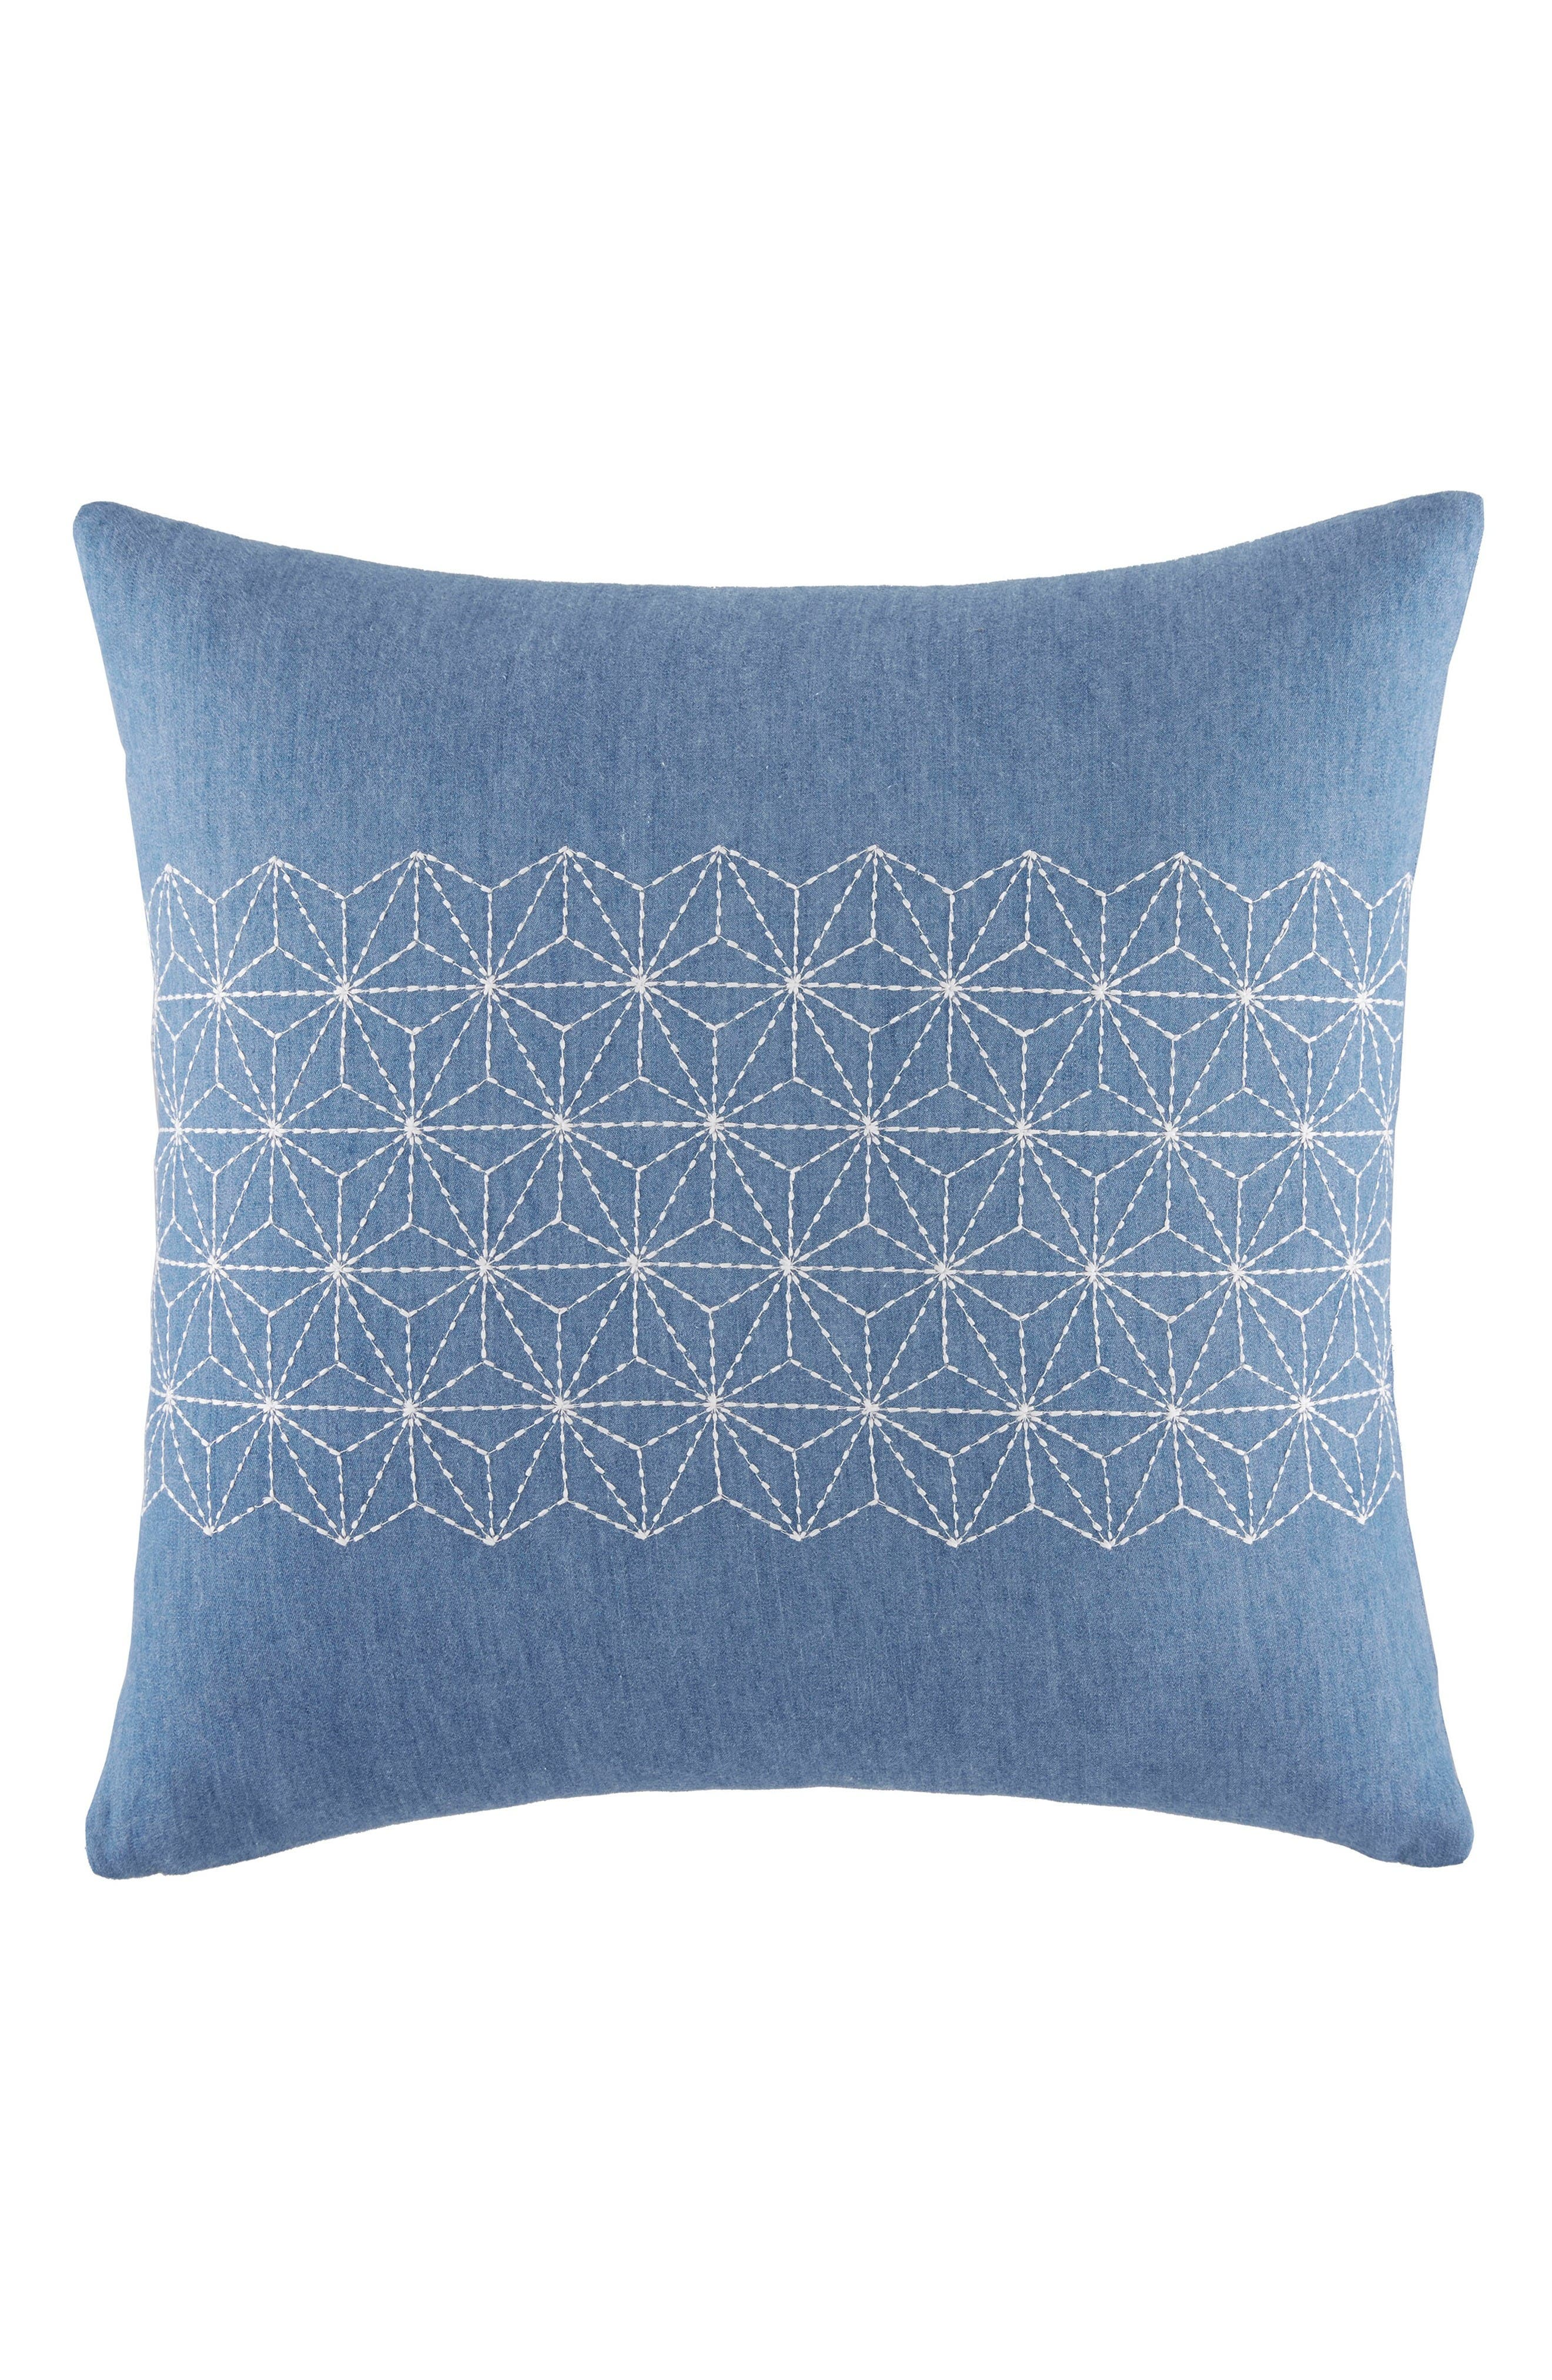 Geo Stitched Accent Pillow,                         Main,                         color, Blue